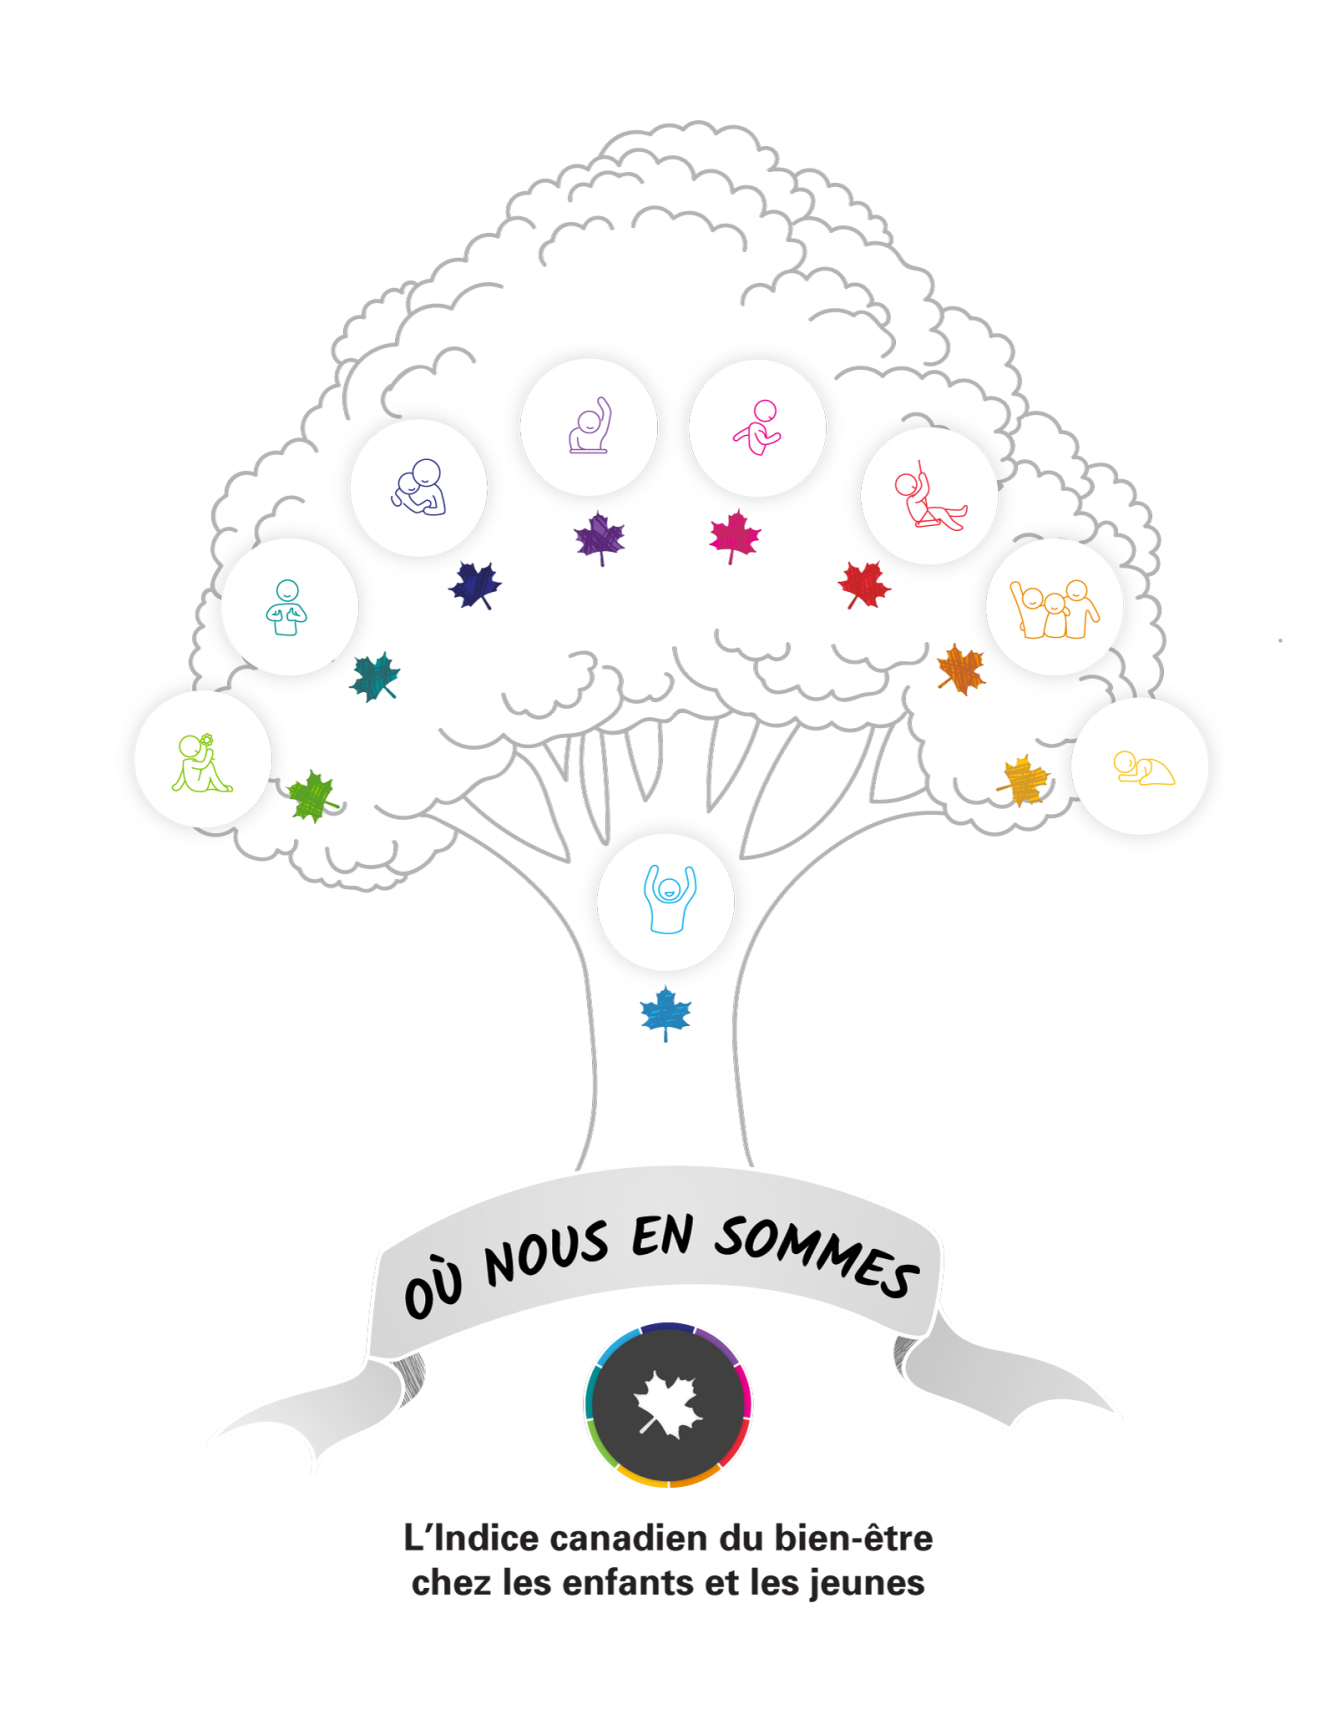 Tree_Graphic_French_WithoutLabels.png